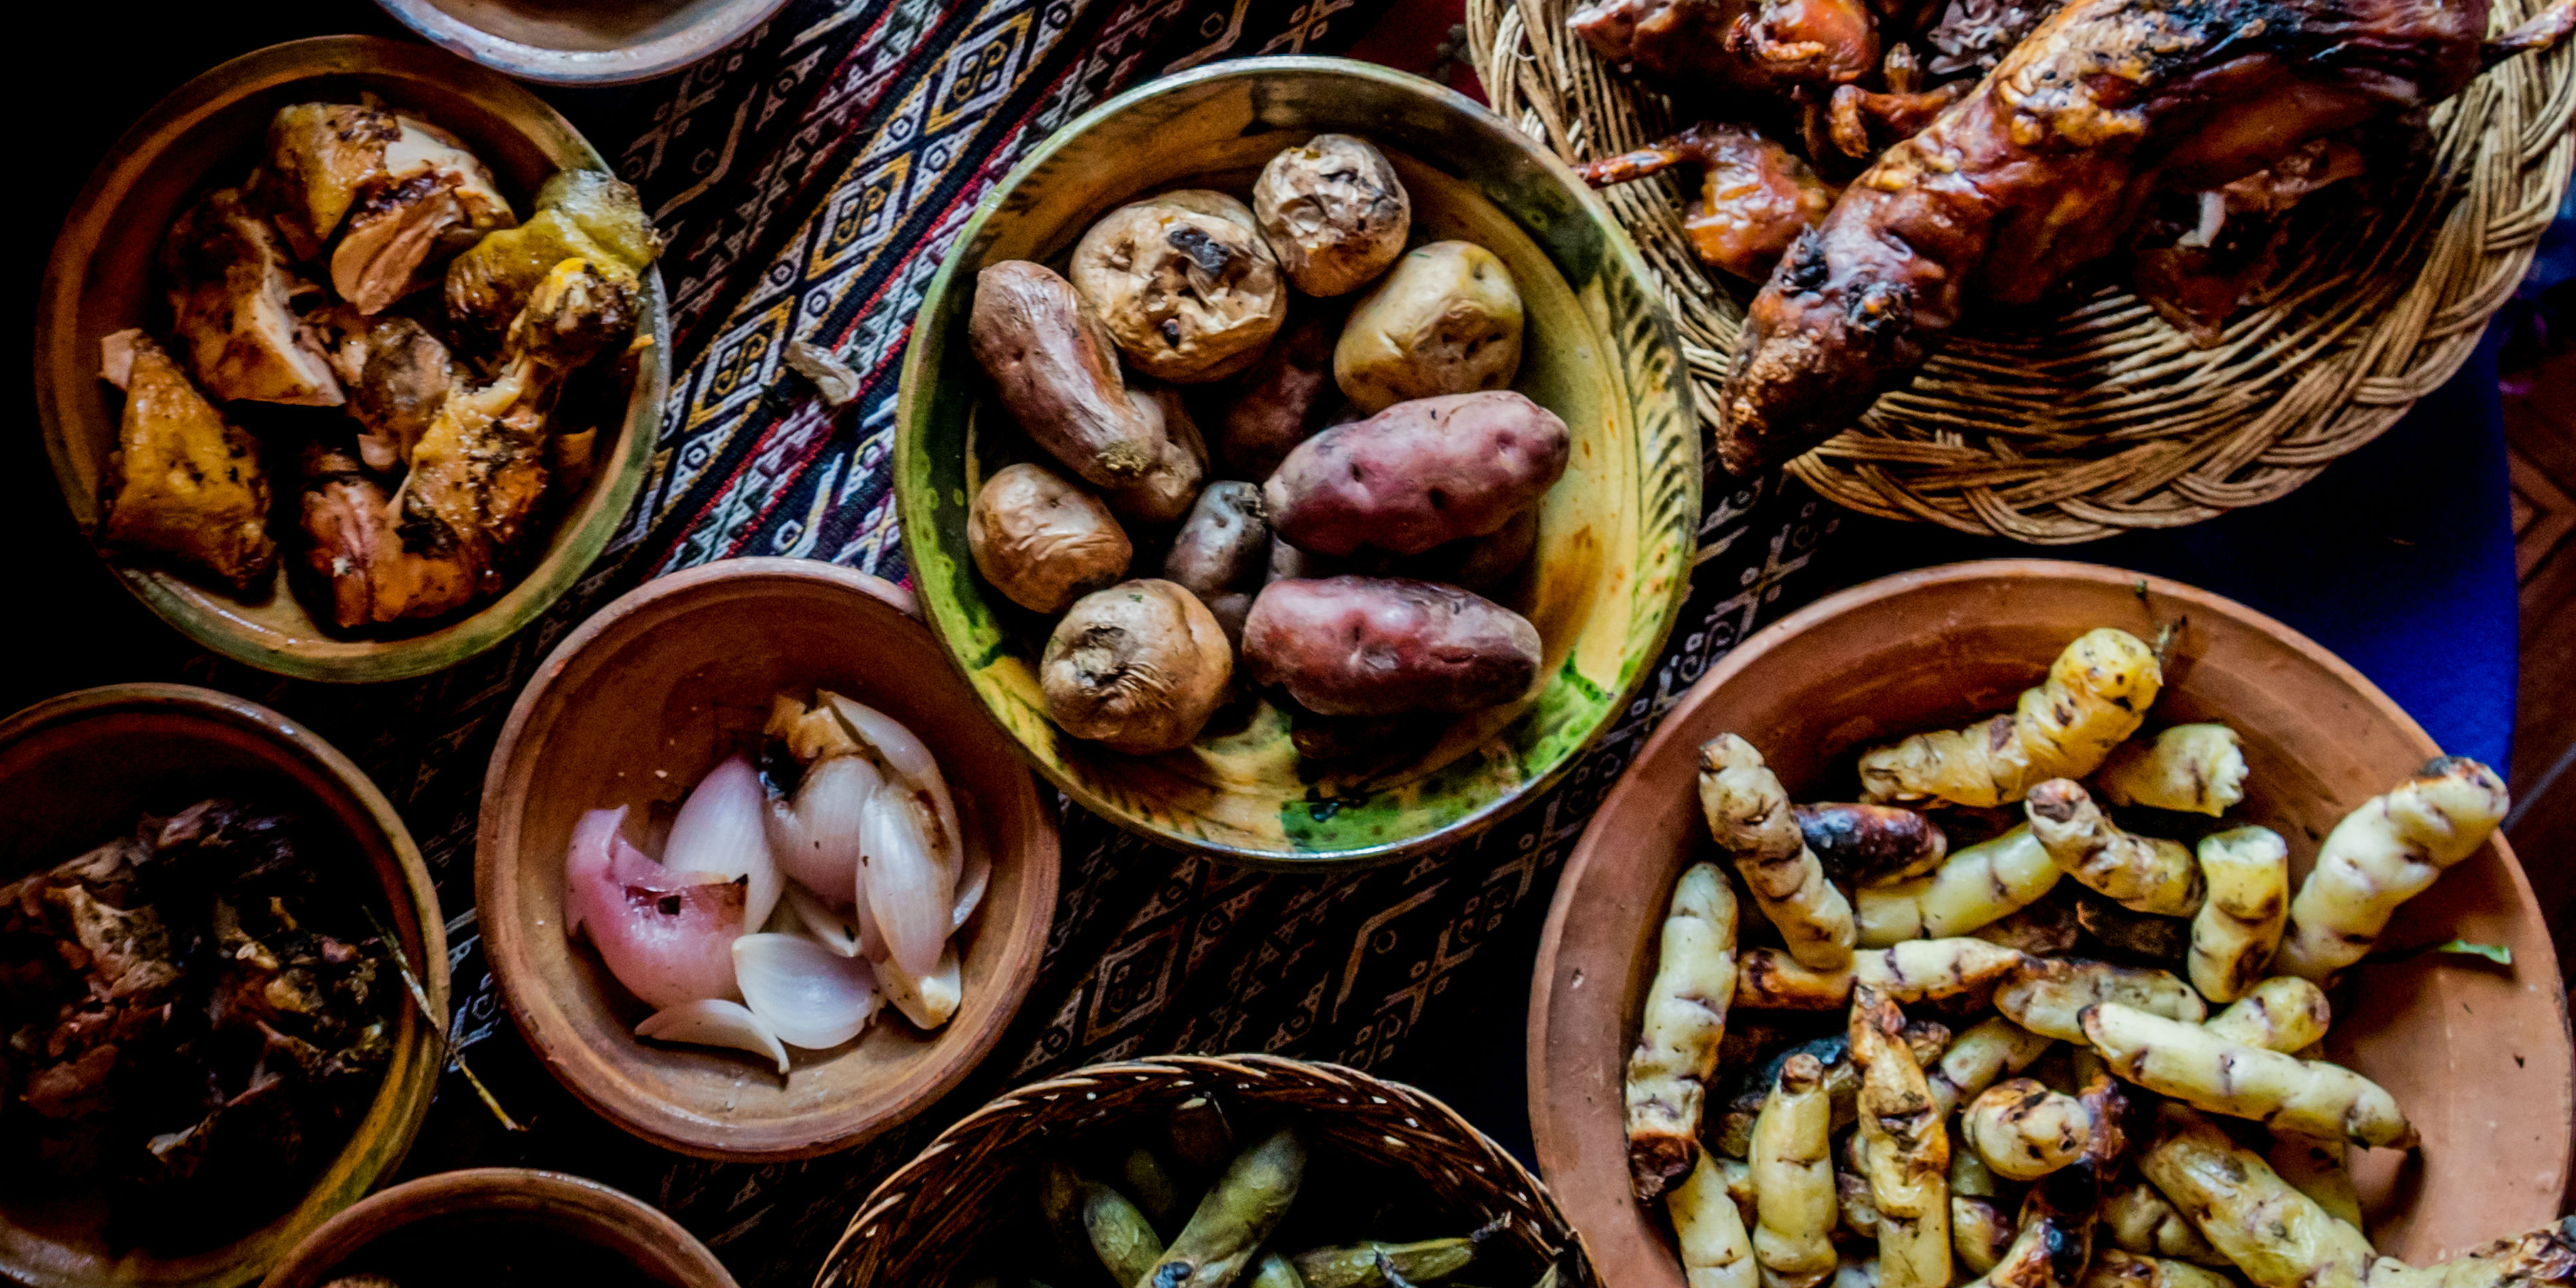 Mesoamerican food traditions